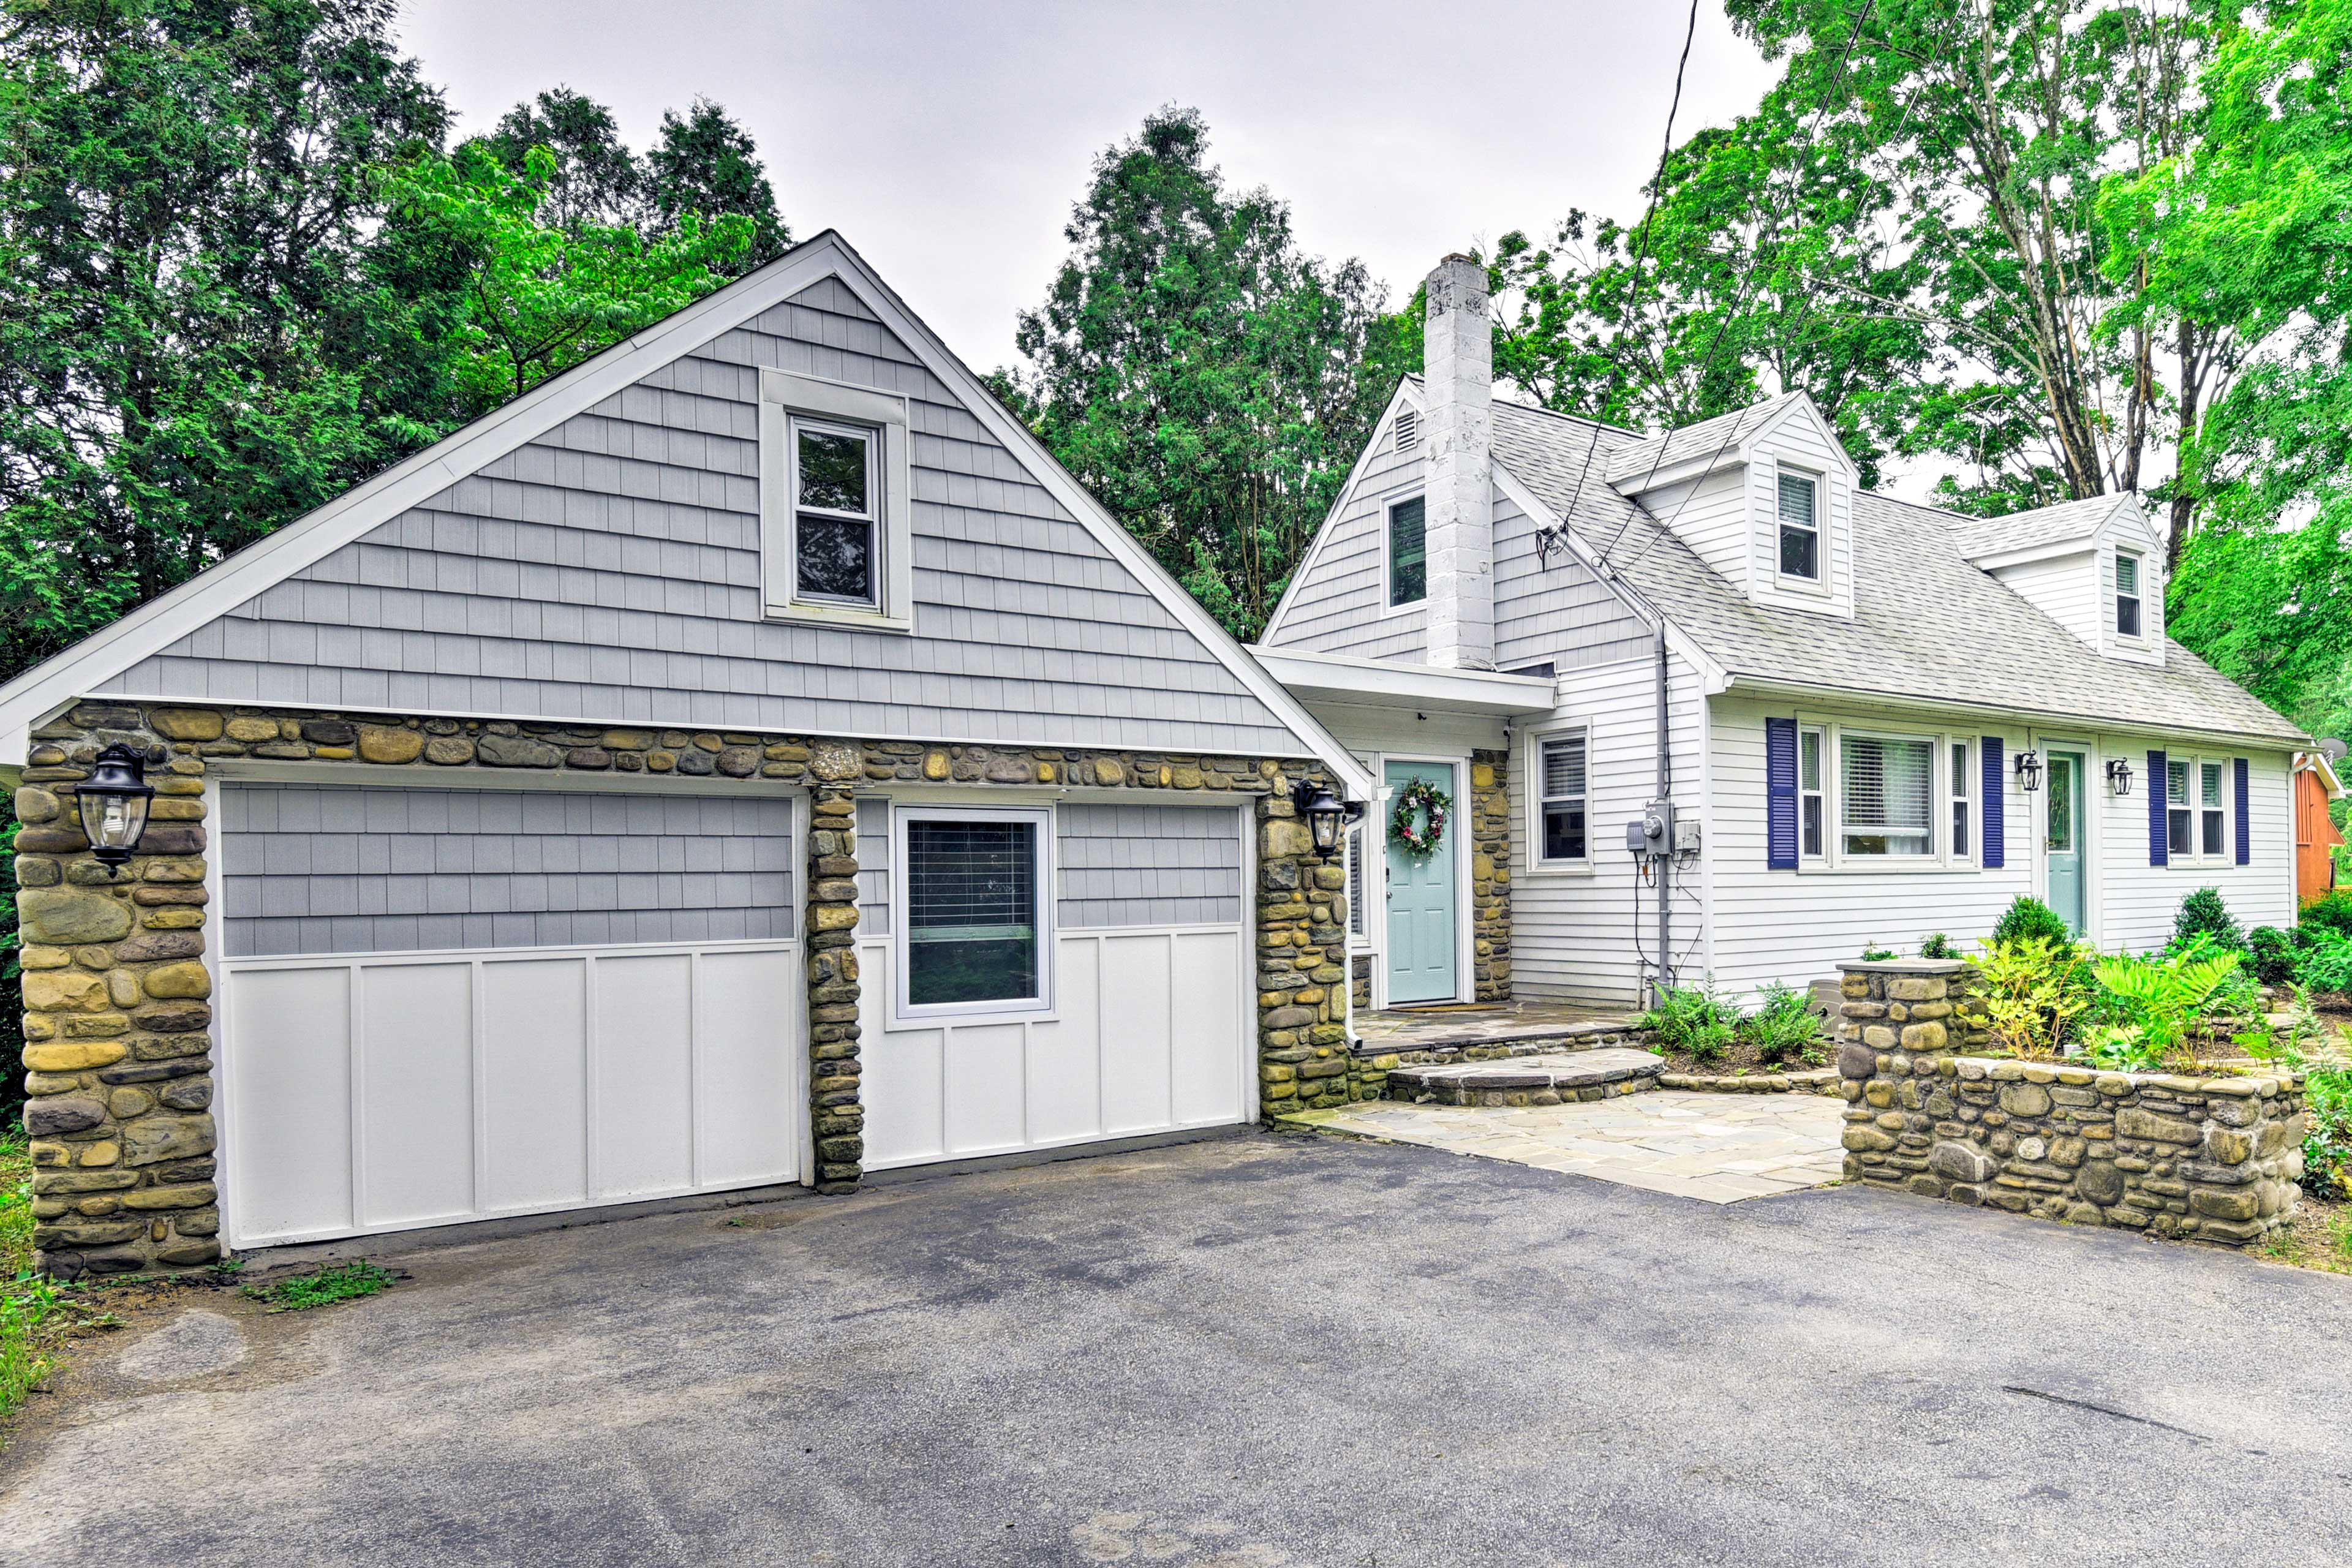 For the ultimate Pennsylvania getaway, book this charming vacation rental home!